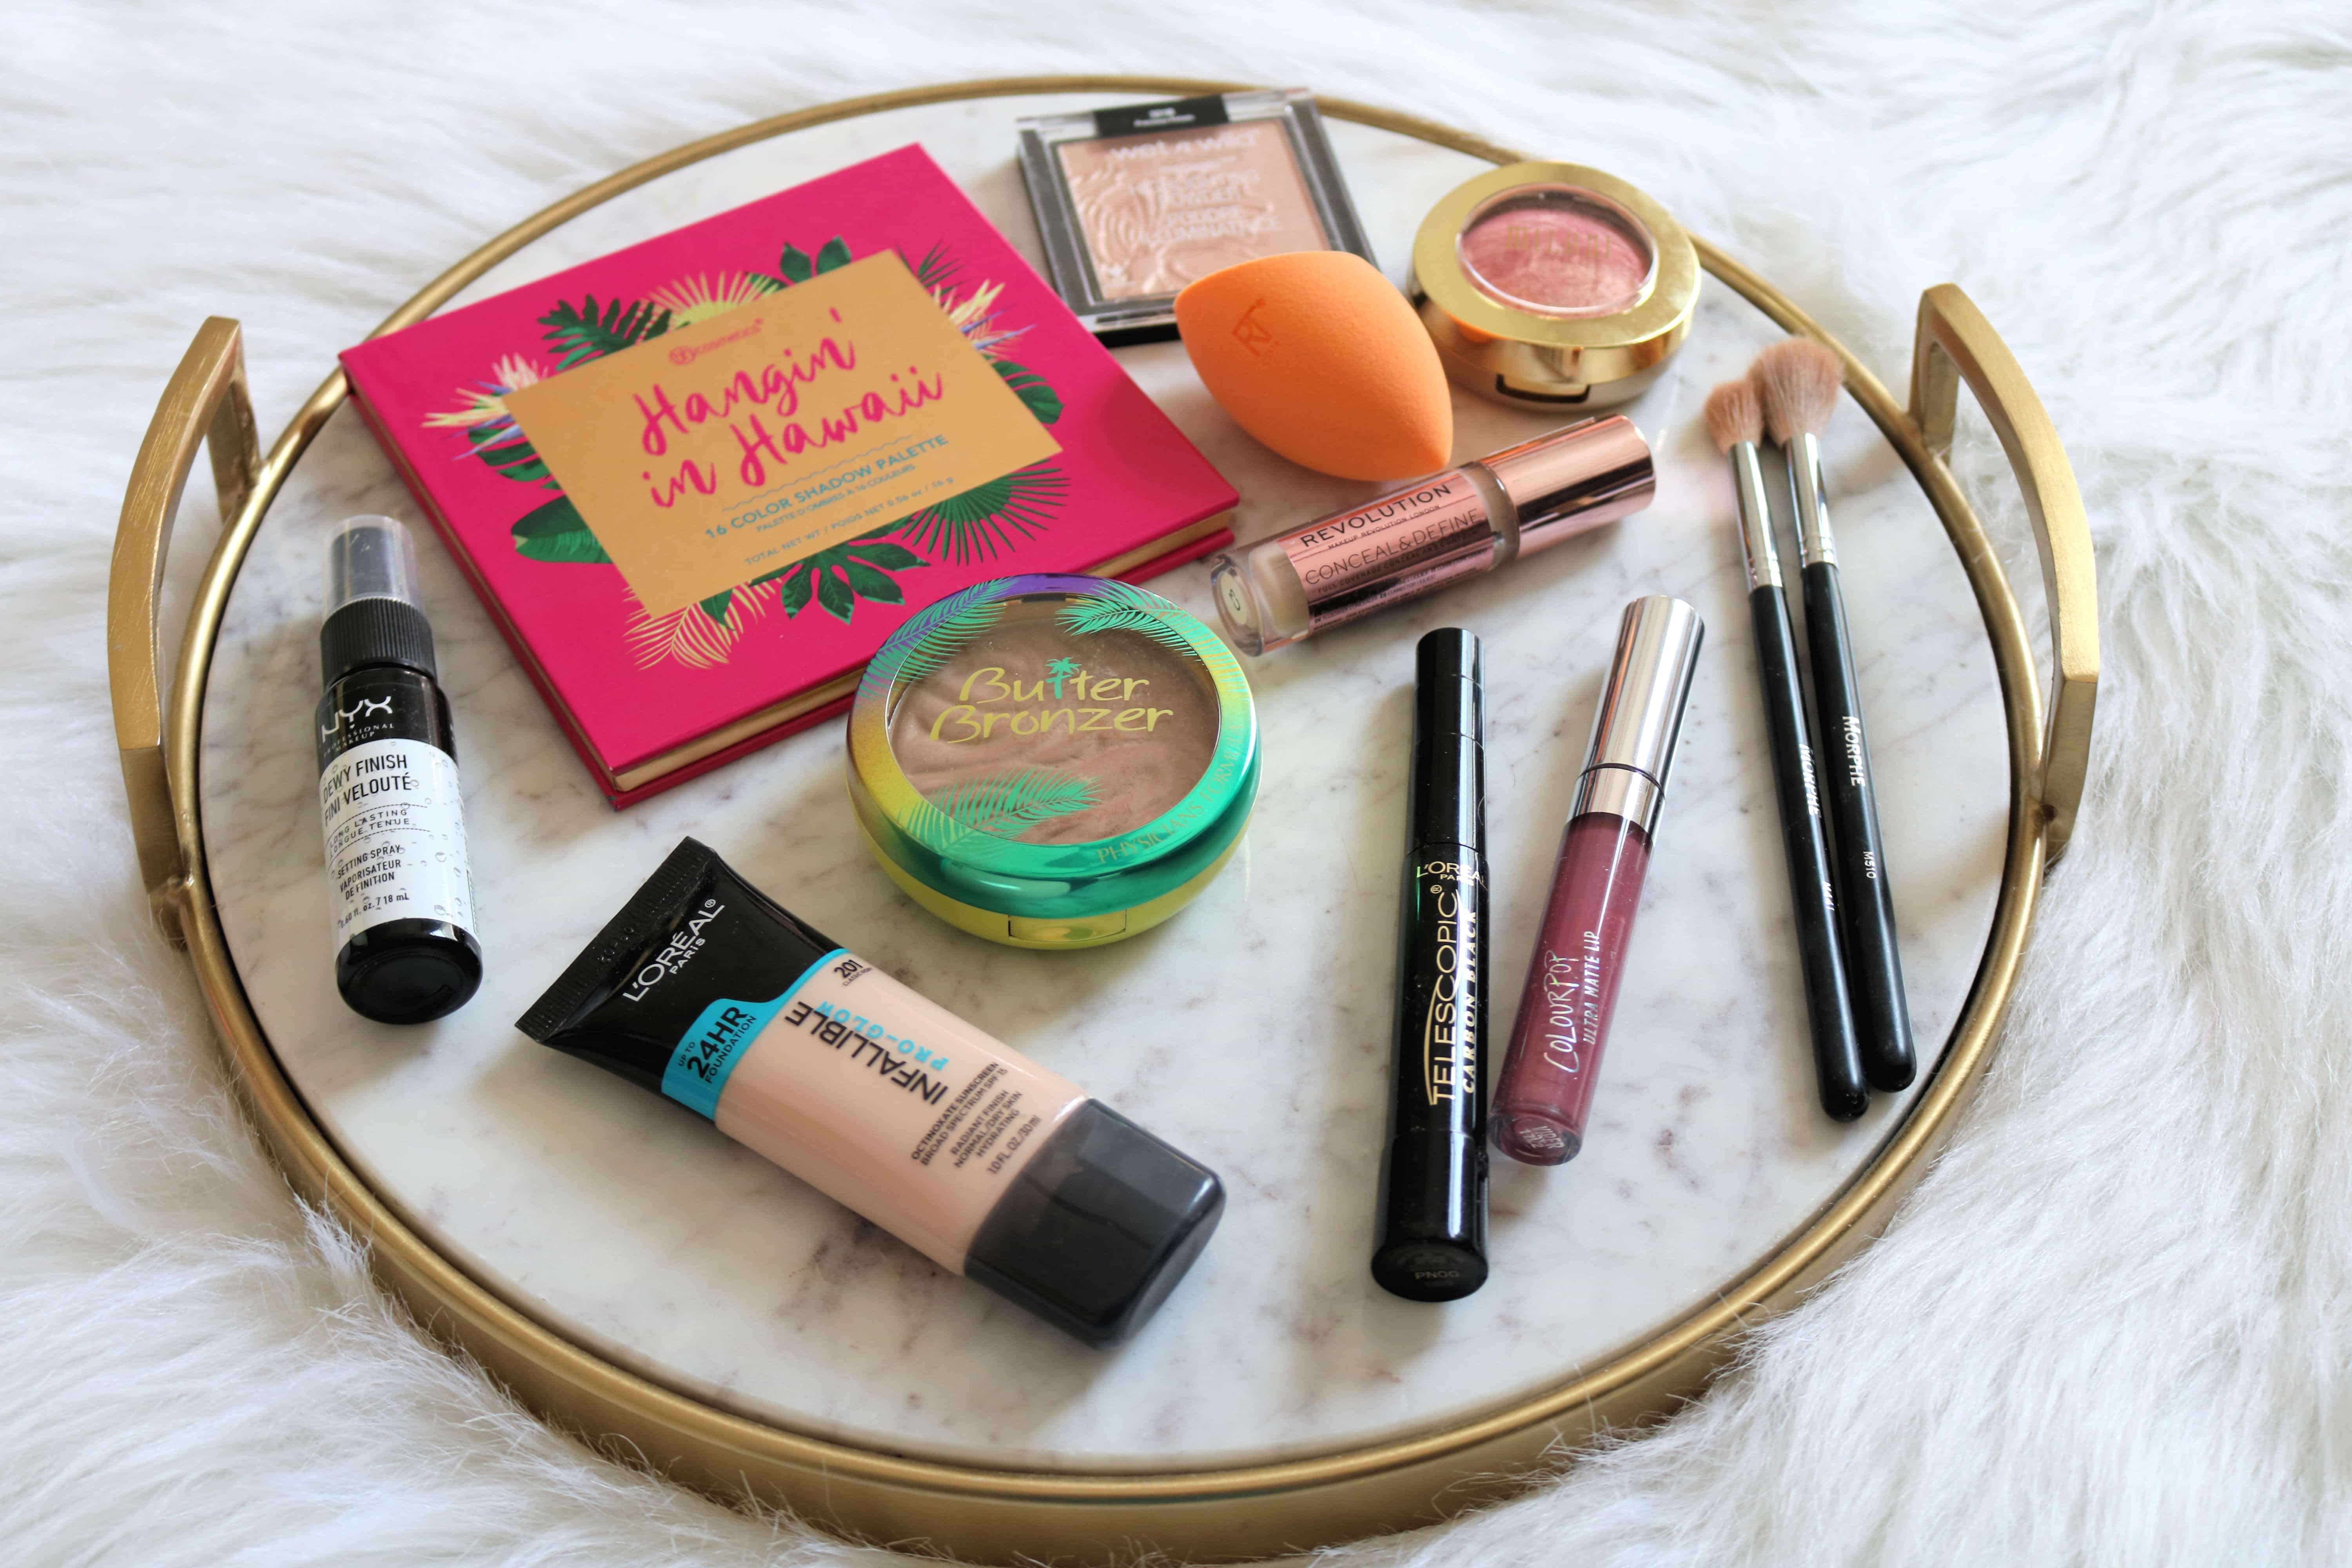 This drugstore makeup kit for beginners provides every makeup product that a makeup beginner needs in their collection. Even better it's all under $25! #drugstoremakeup #makeup